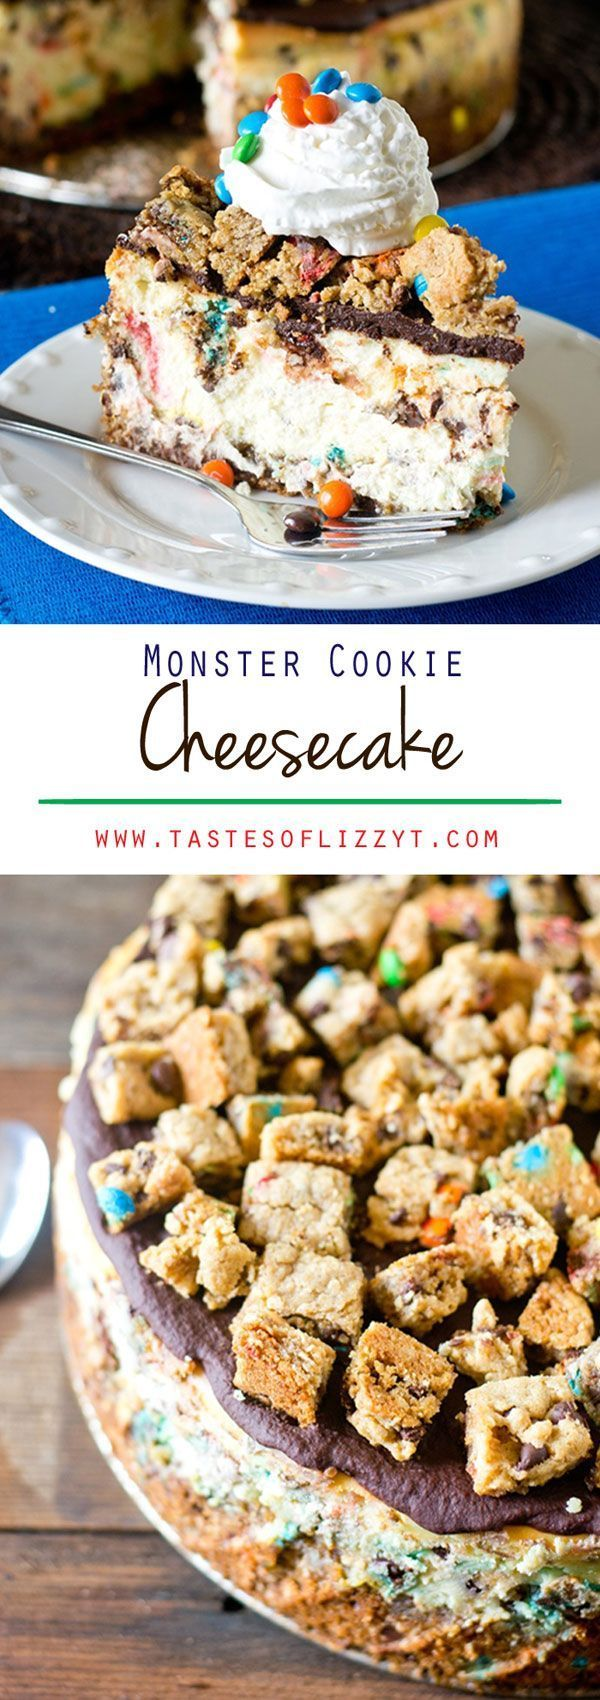 MONSTER COOKIE CHEESECAKE on MyRecipeMagic.com. Your favorite cookie meets creamy cheesecake! This Monster Cookie Cheesecake will be a hit with cookie and cheesecake lovers alike. Cookie crust with M&M's swired throughout and a chocolate ganache topping.